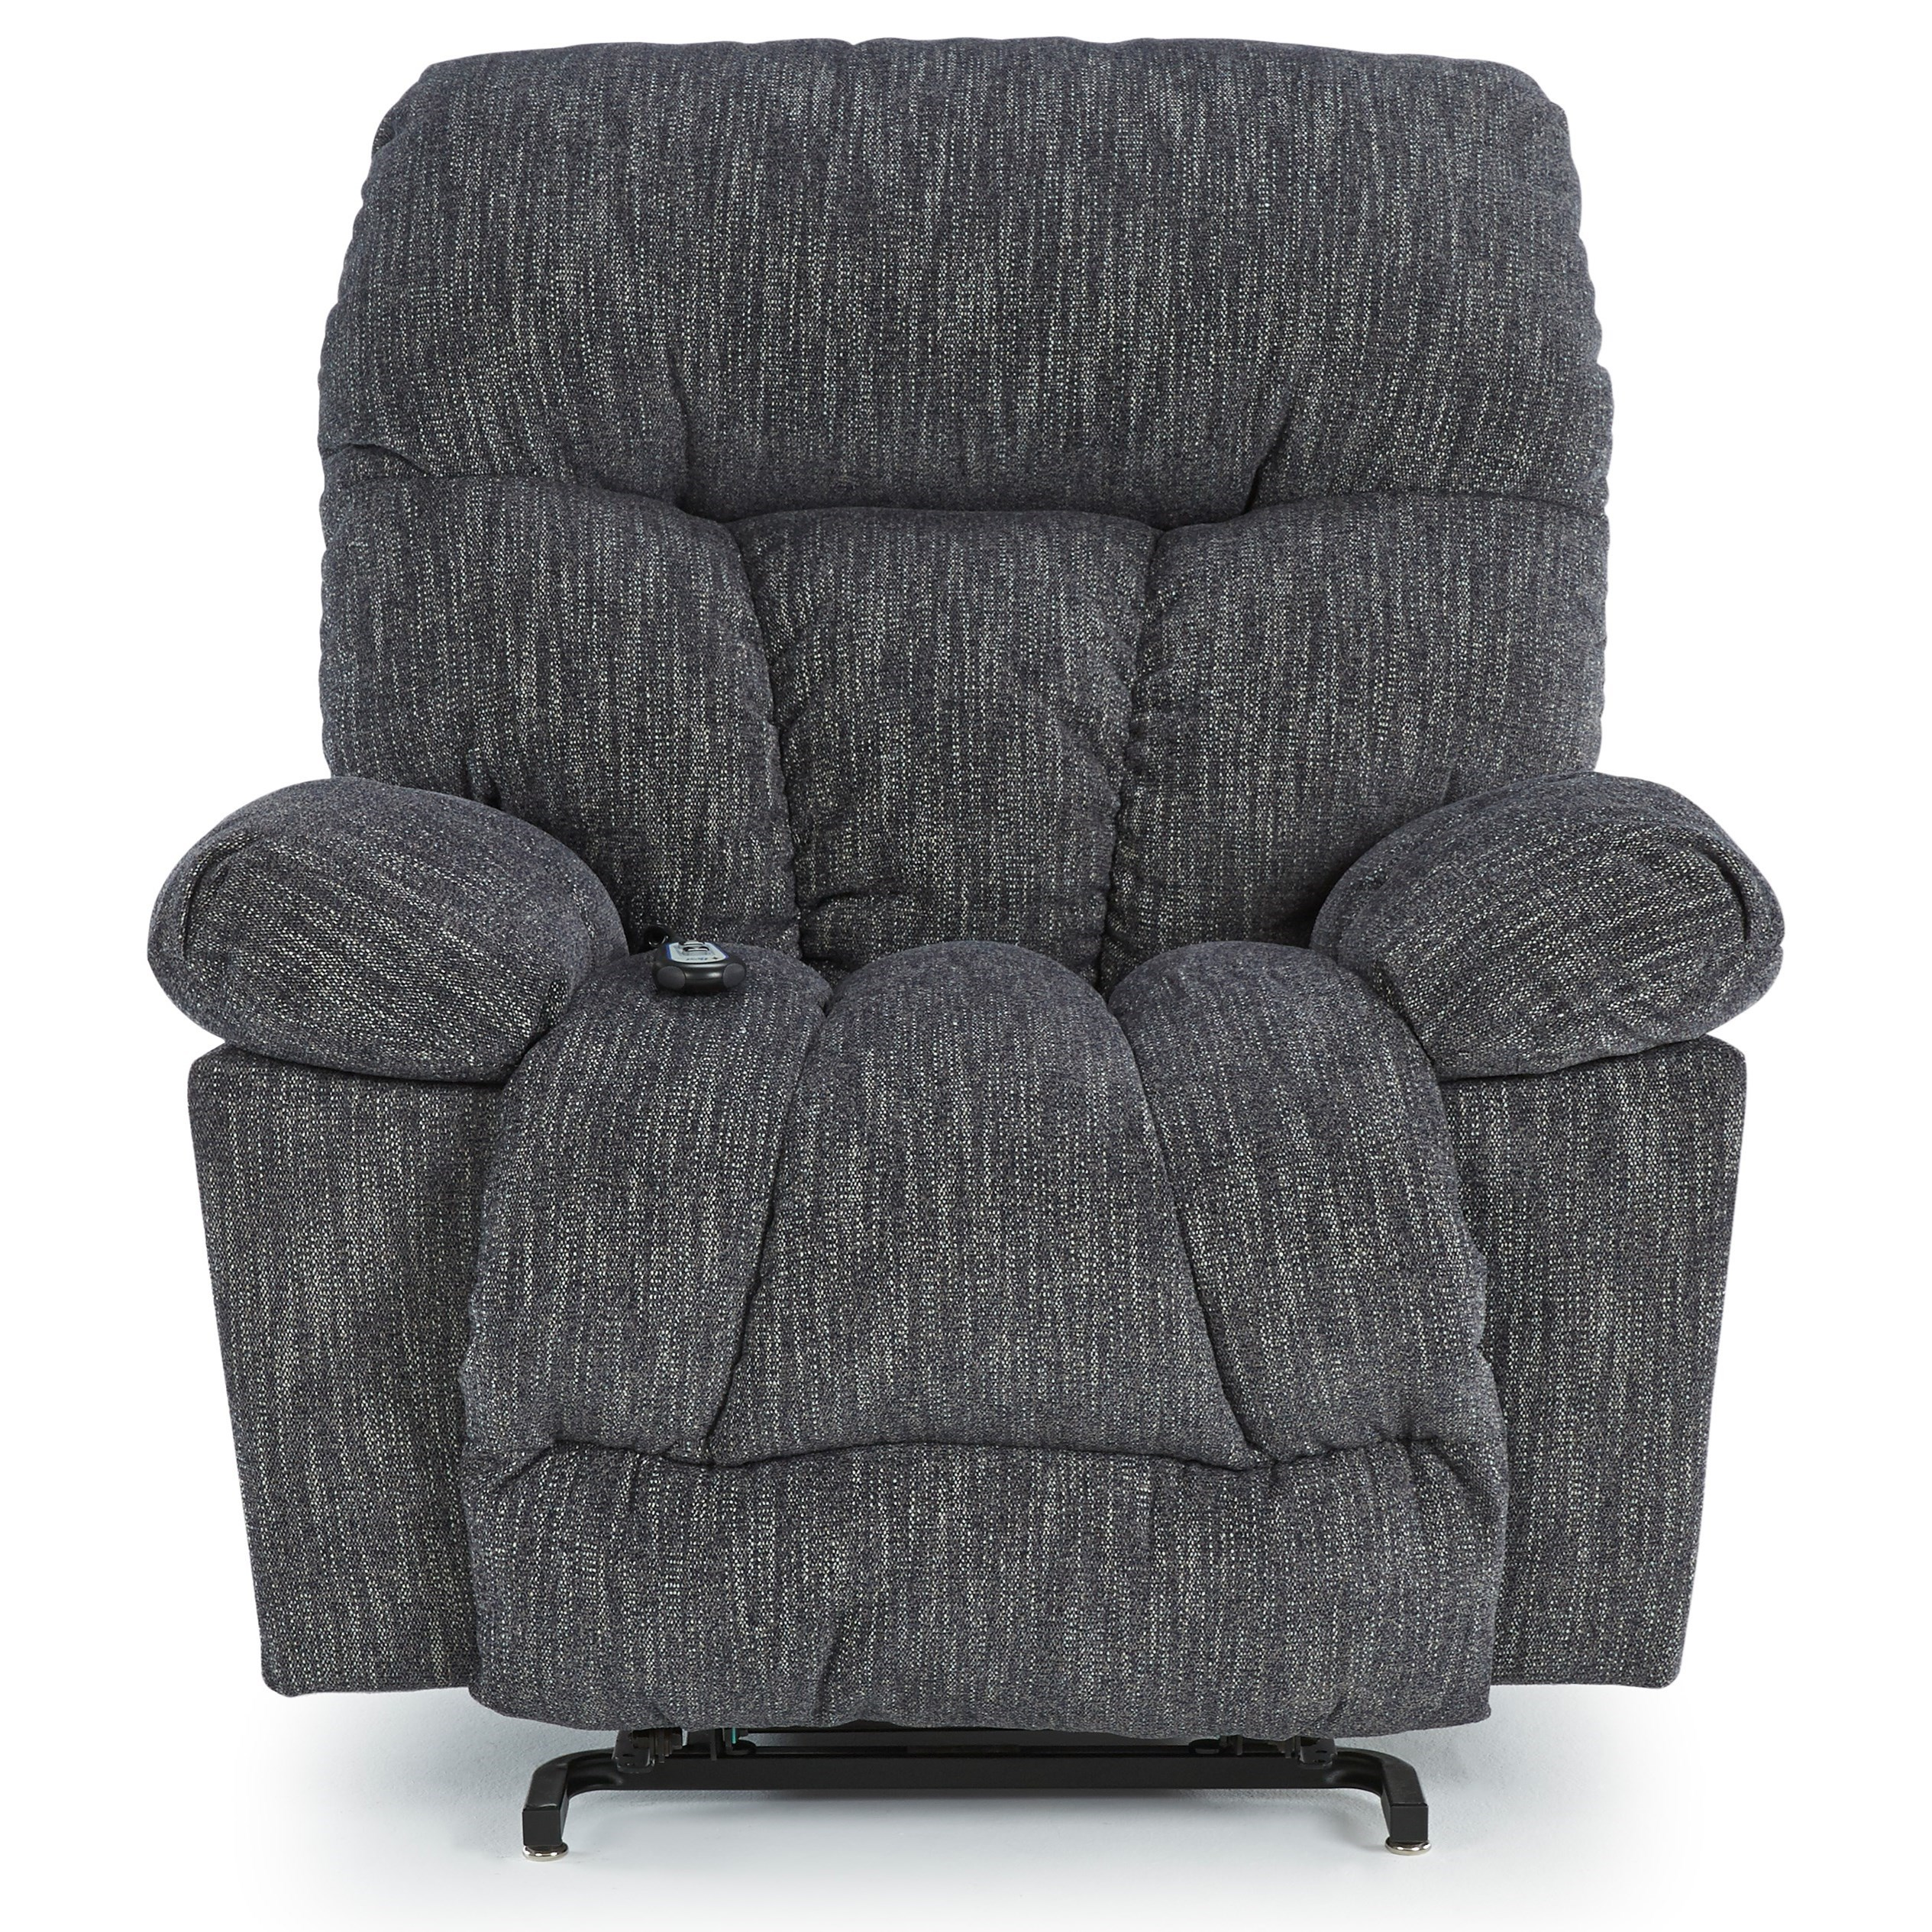 Retreat Power Swivel Glide Recliner by Best Home Furnishings at Bullard Furniture